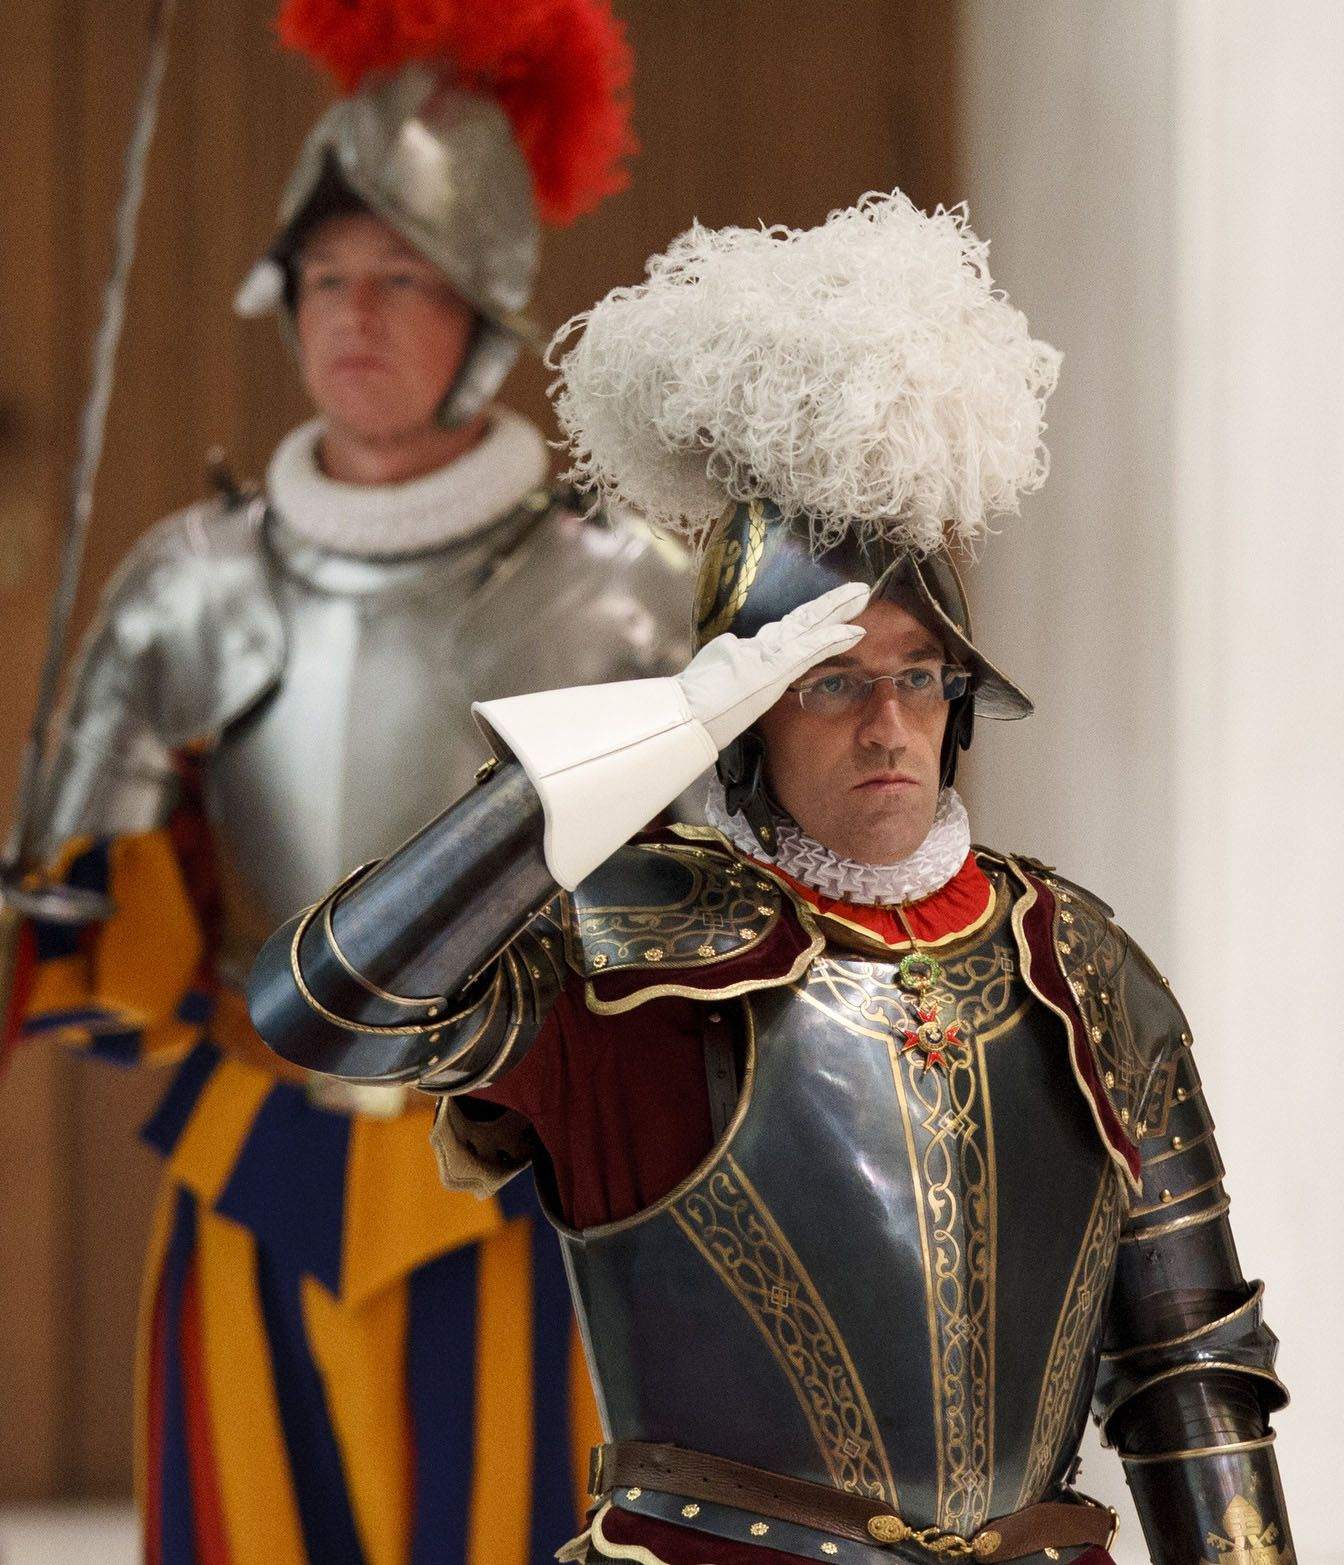 Swiss Guard claims Vatican official made sexual advances to him ...